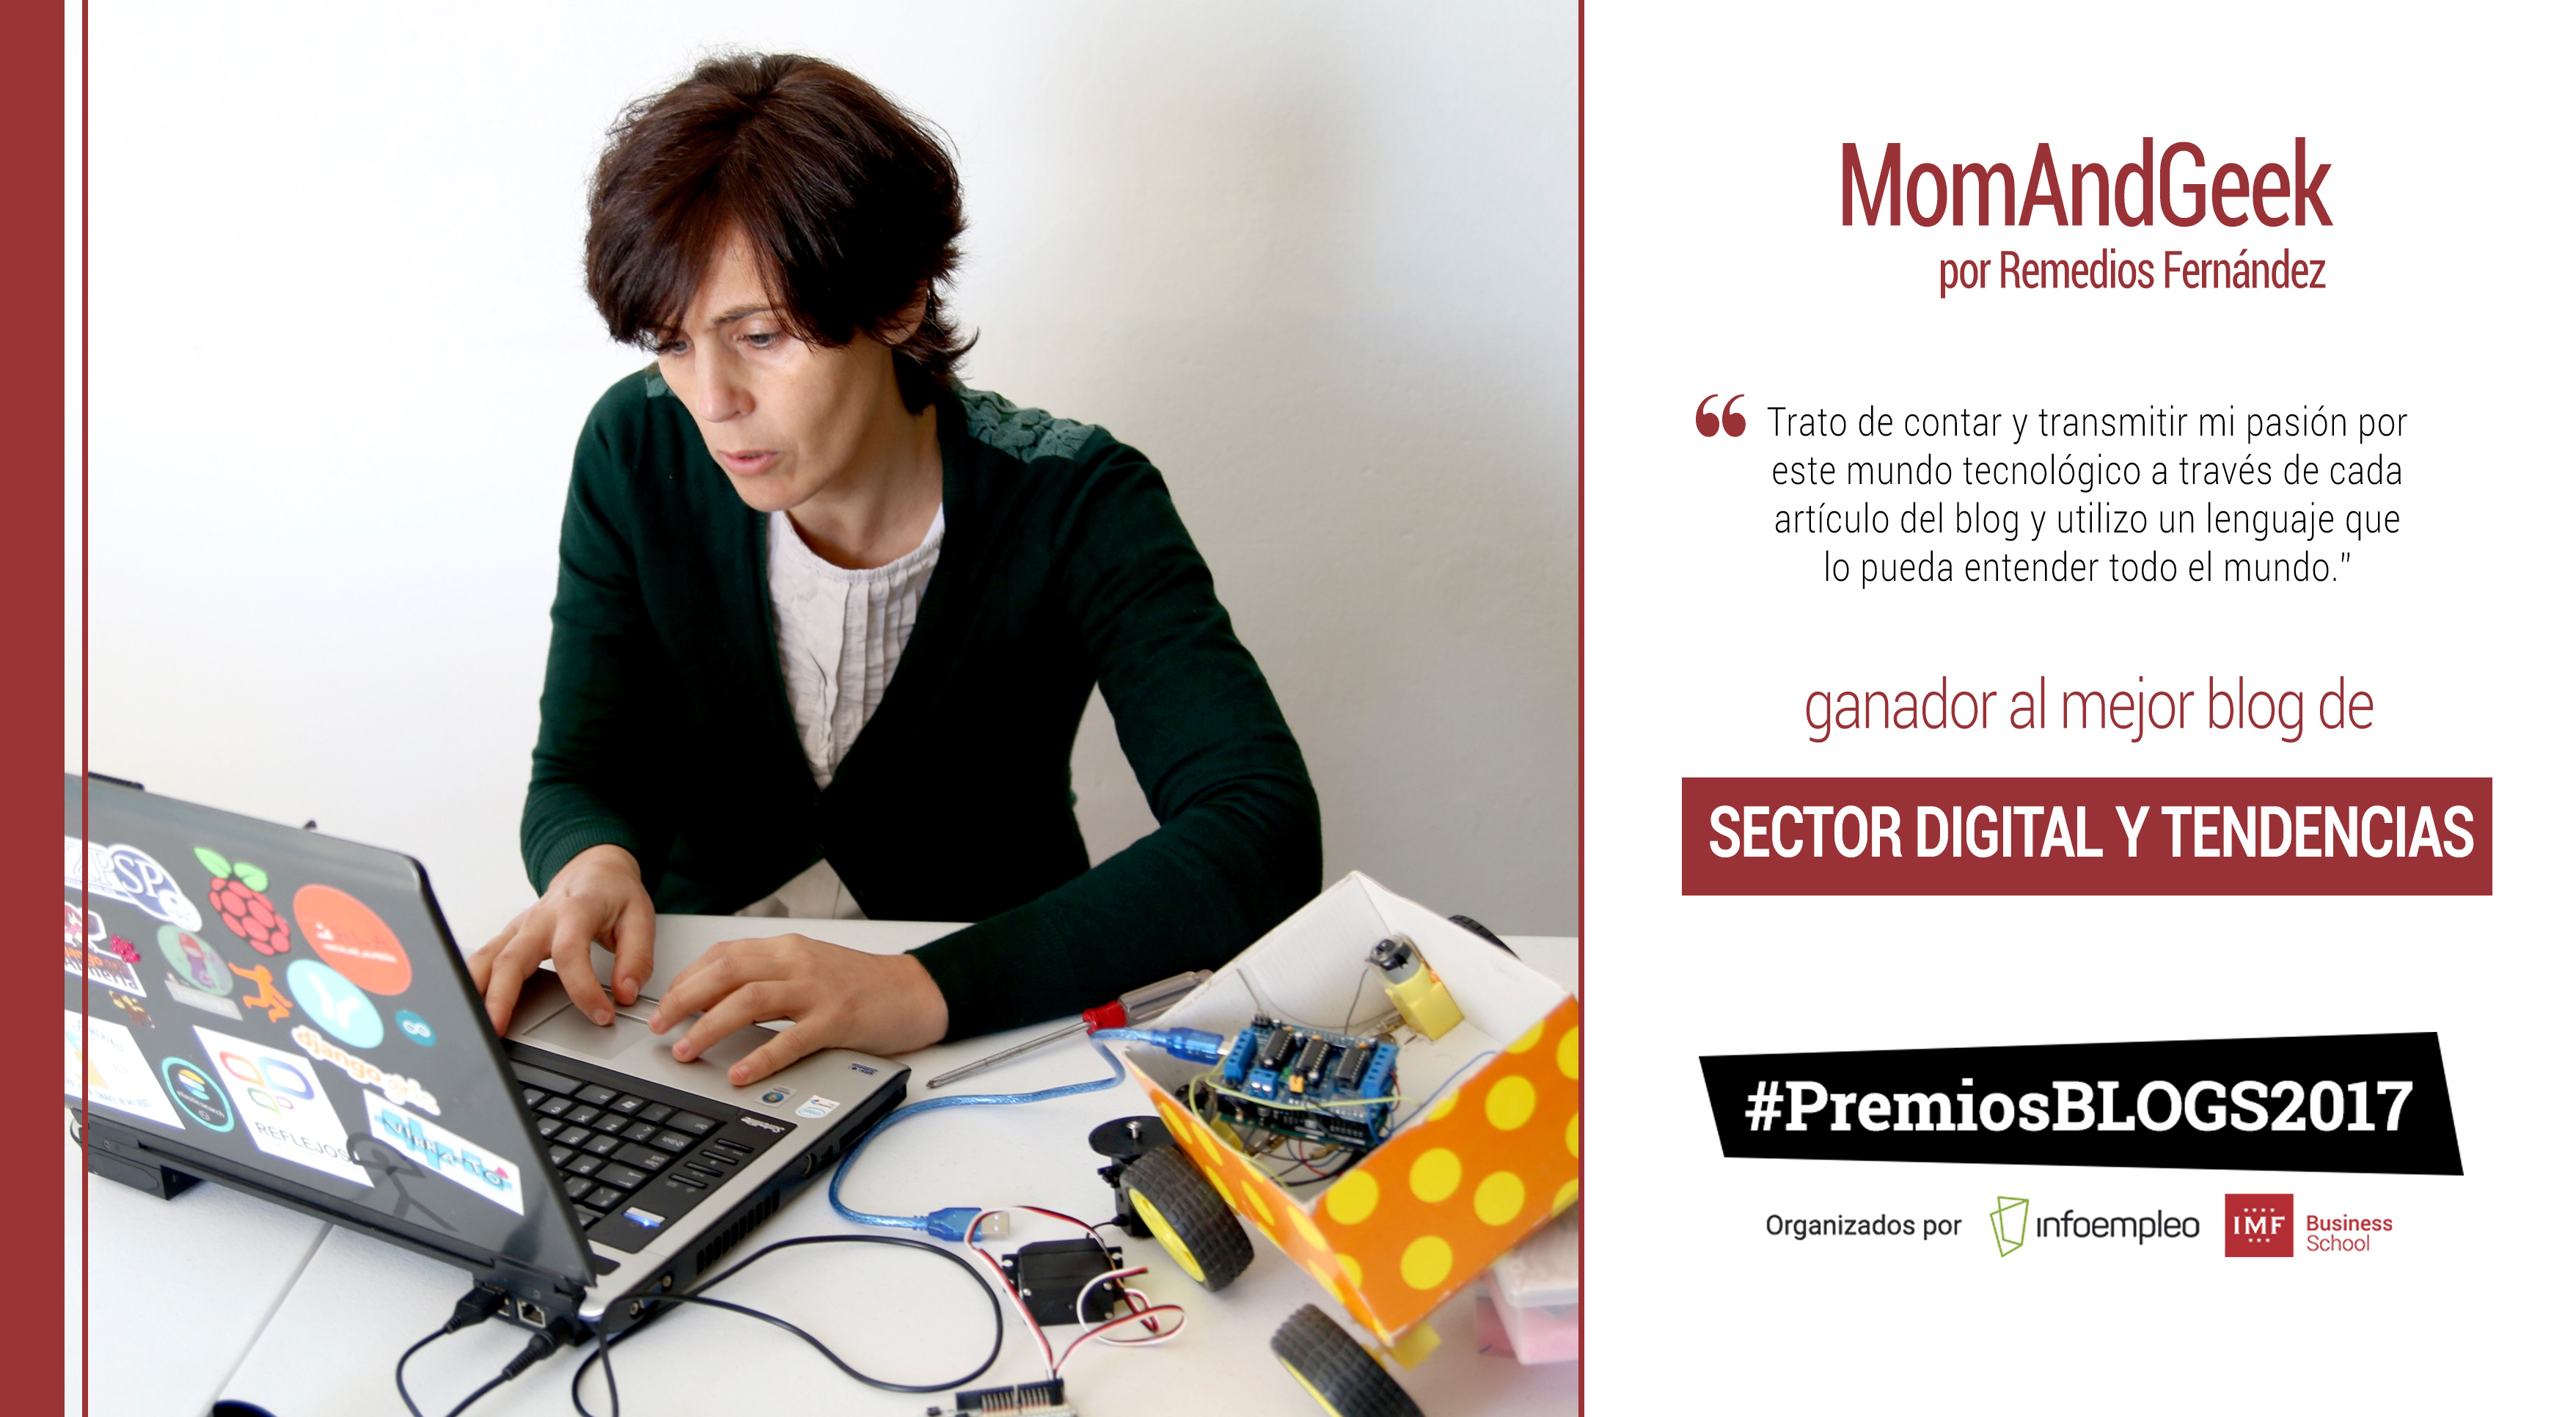 entrevista-premios-blogs-sector-digital-tendencias MomAndGeek, mejor blog de sector digital y tendencias en los #PremiosBlogs2017